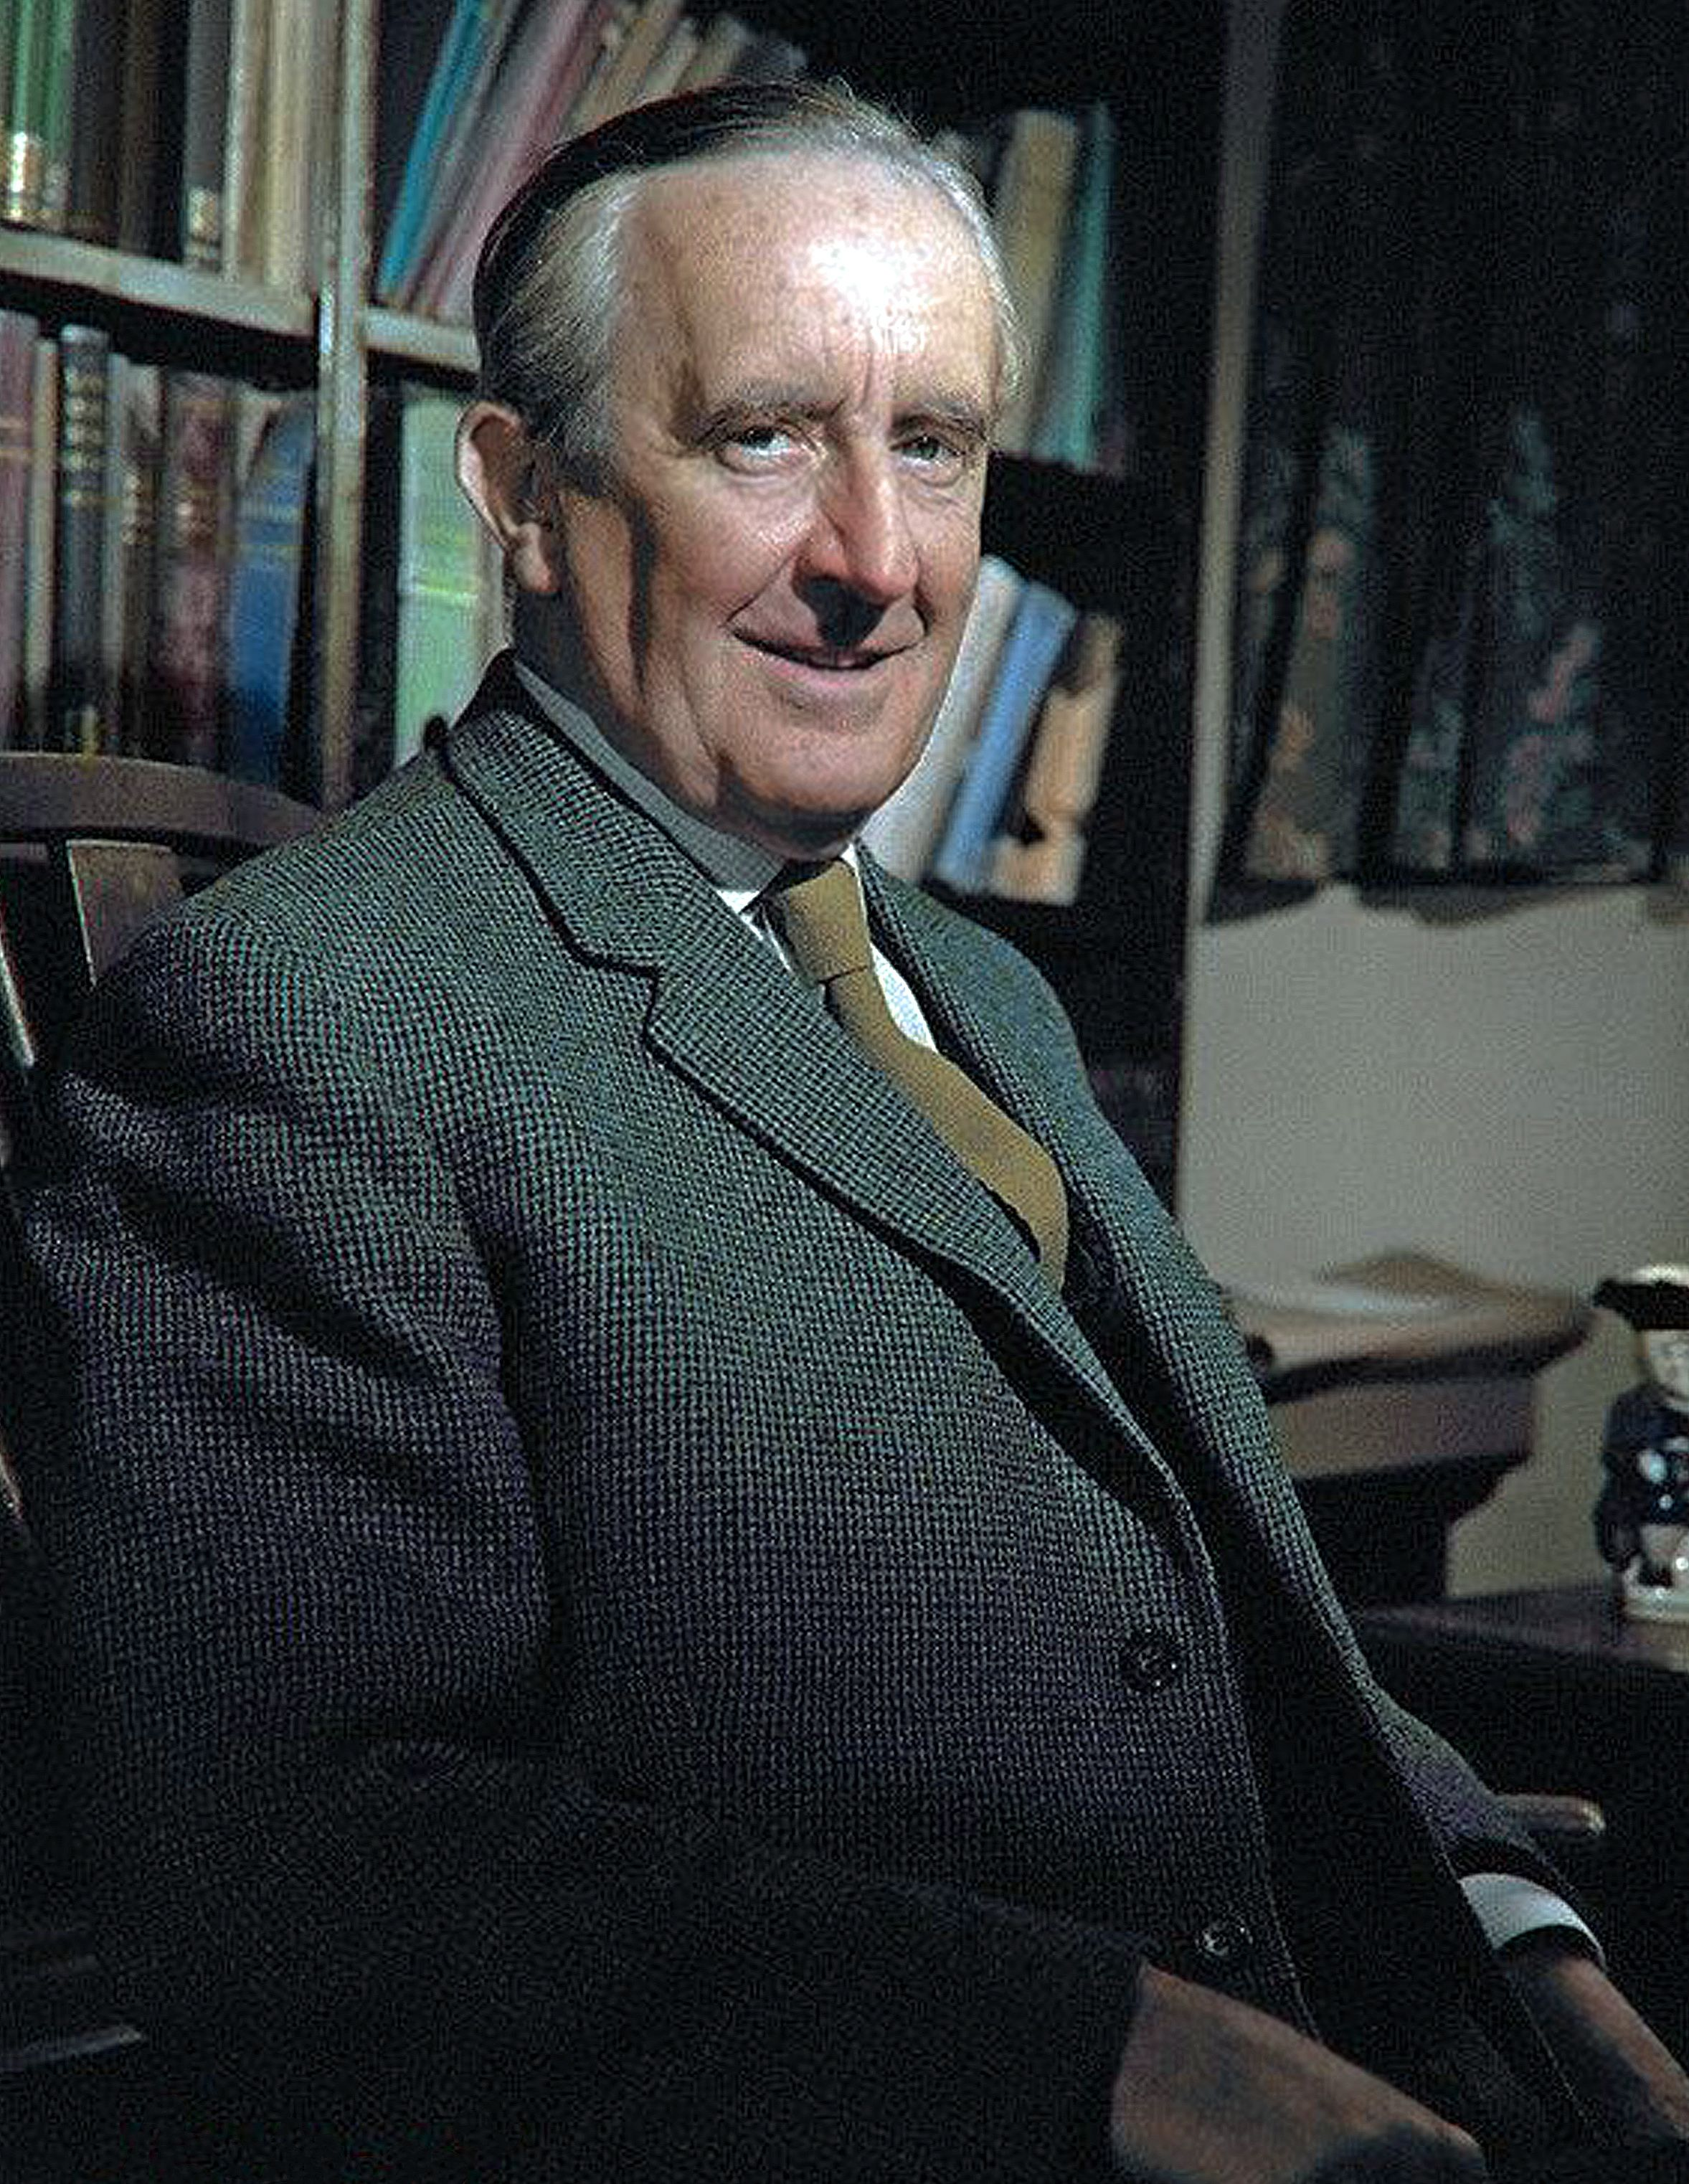 J. R. R. Tolkien | Writers and poets, Famous authors, Historical people